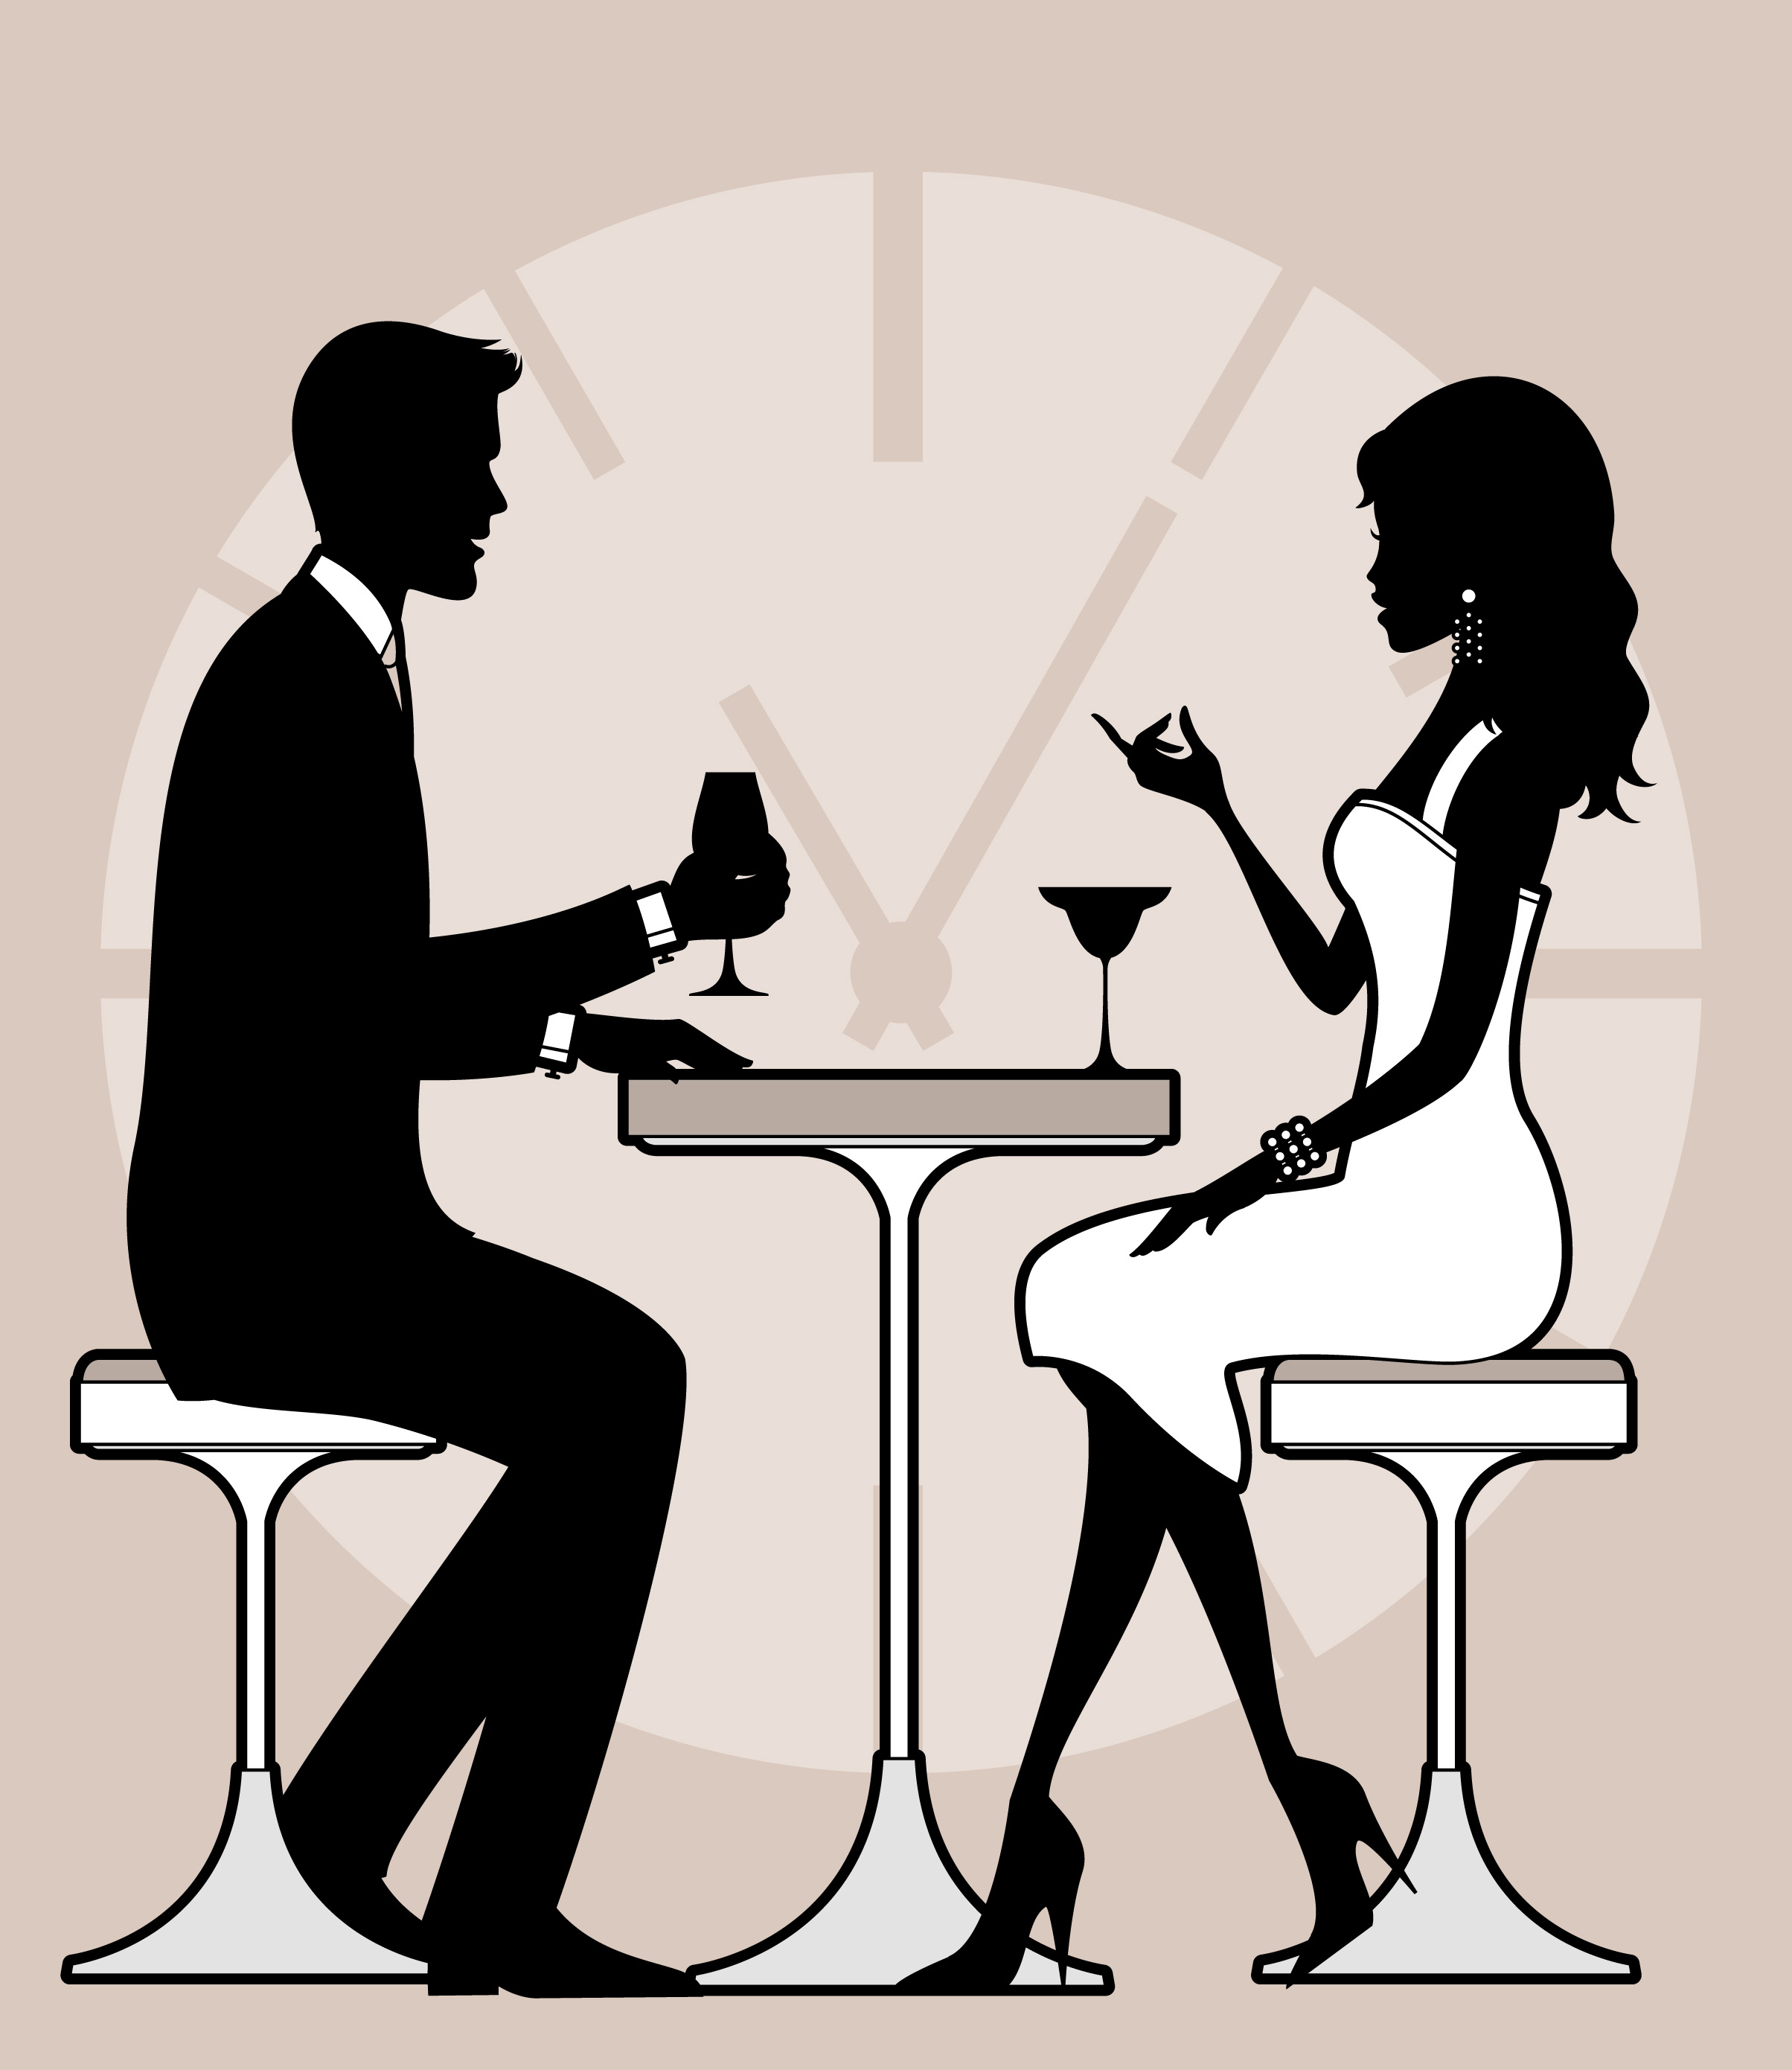 Speed dating clipart picture transparent library 5 things you need to know about speed-dating   LunchClick – Dating ... picture transparent library